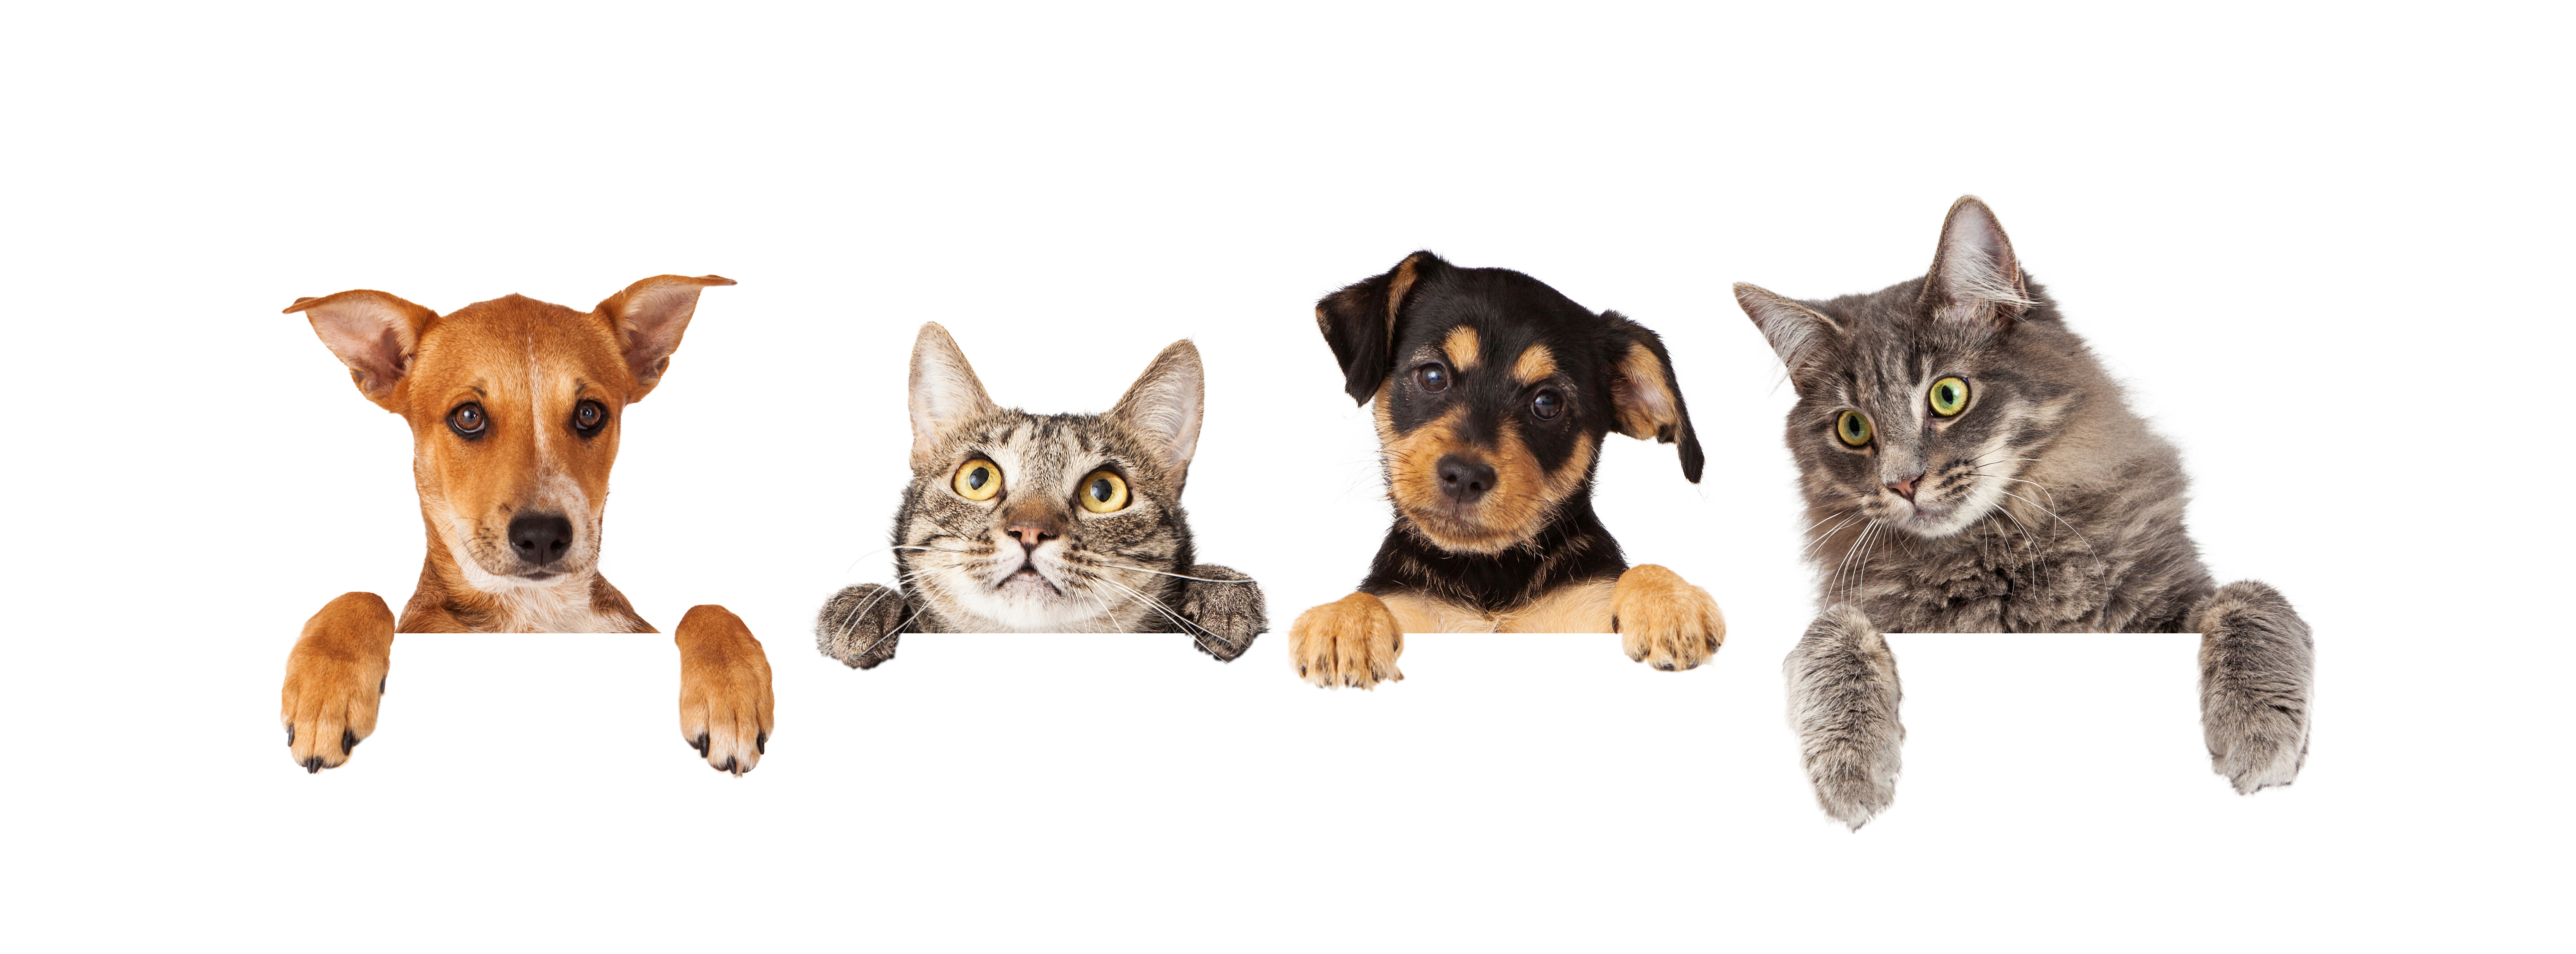 Member input sought for RSPCA submission